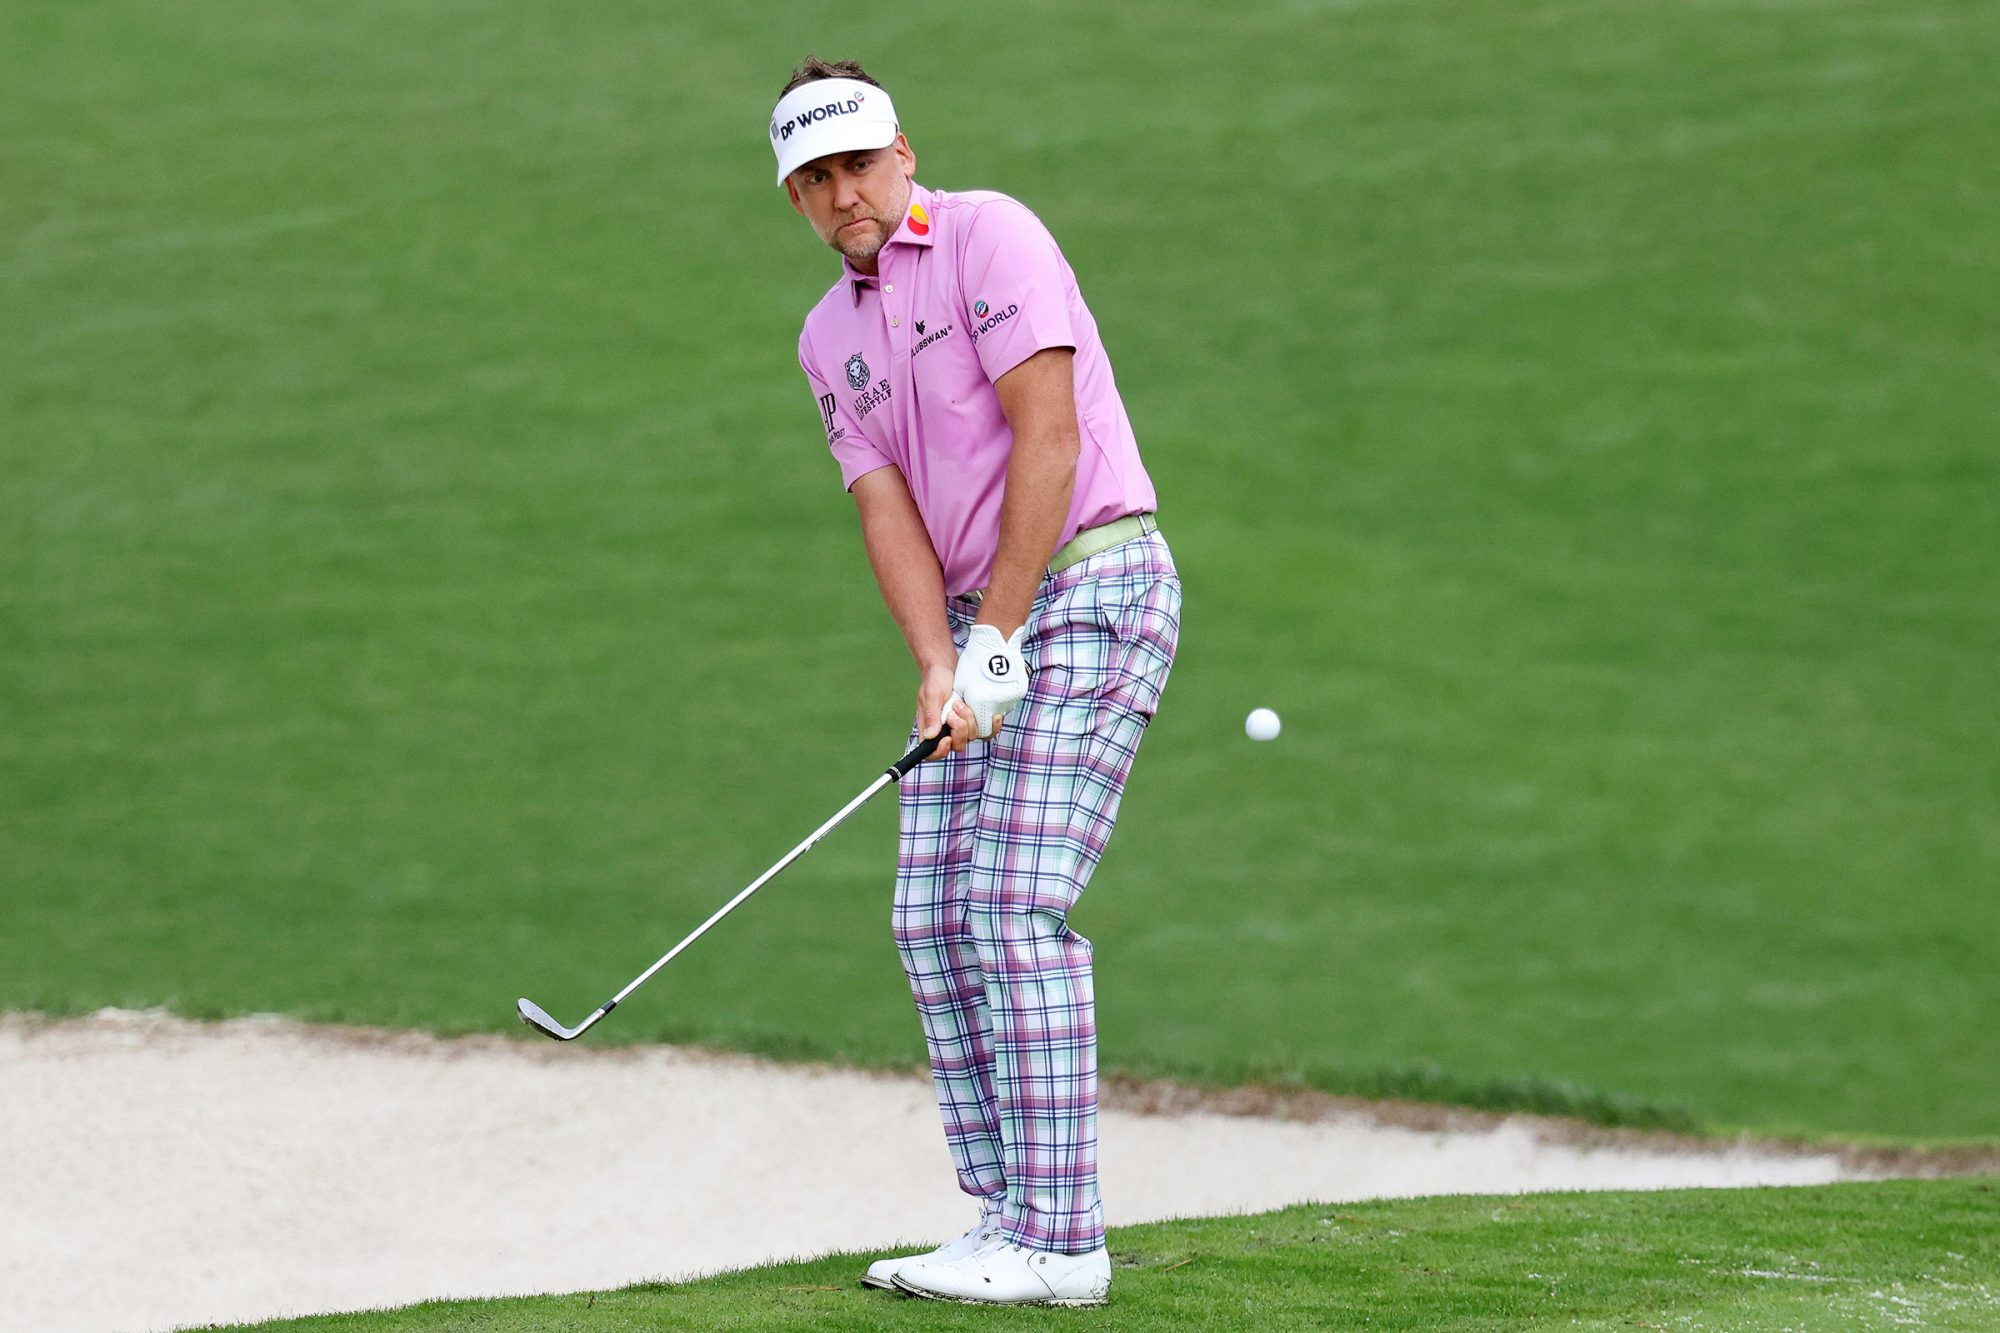 Ian Poulter of England plays a shot on the 10th hole during the final round of the Masters at Augusta National Golf Club on November 15, 2020 in Augusta, Georgia